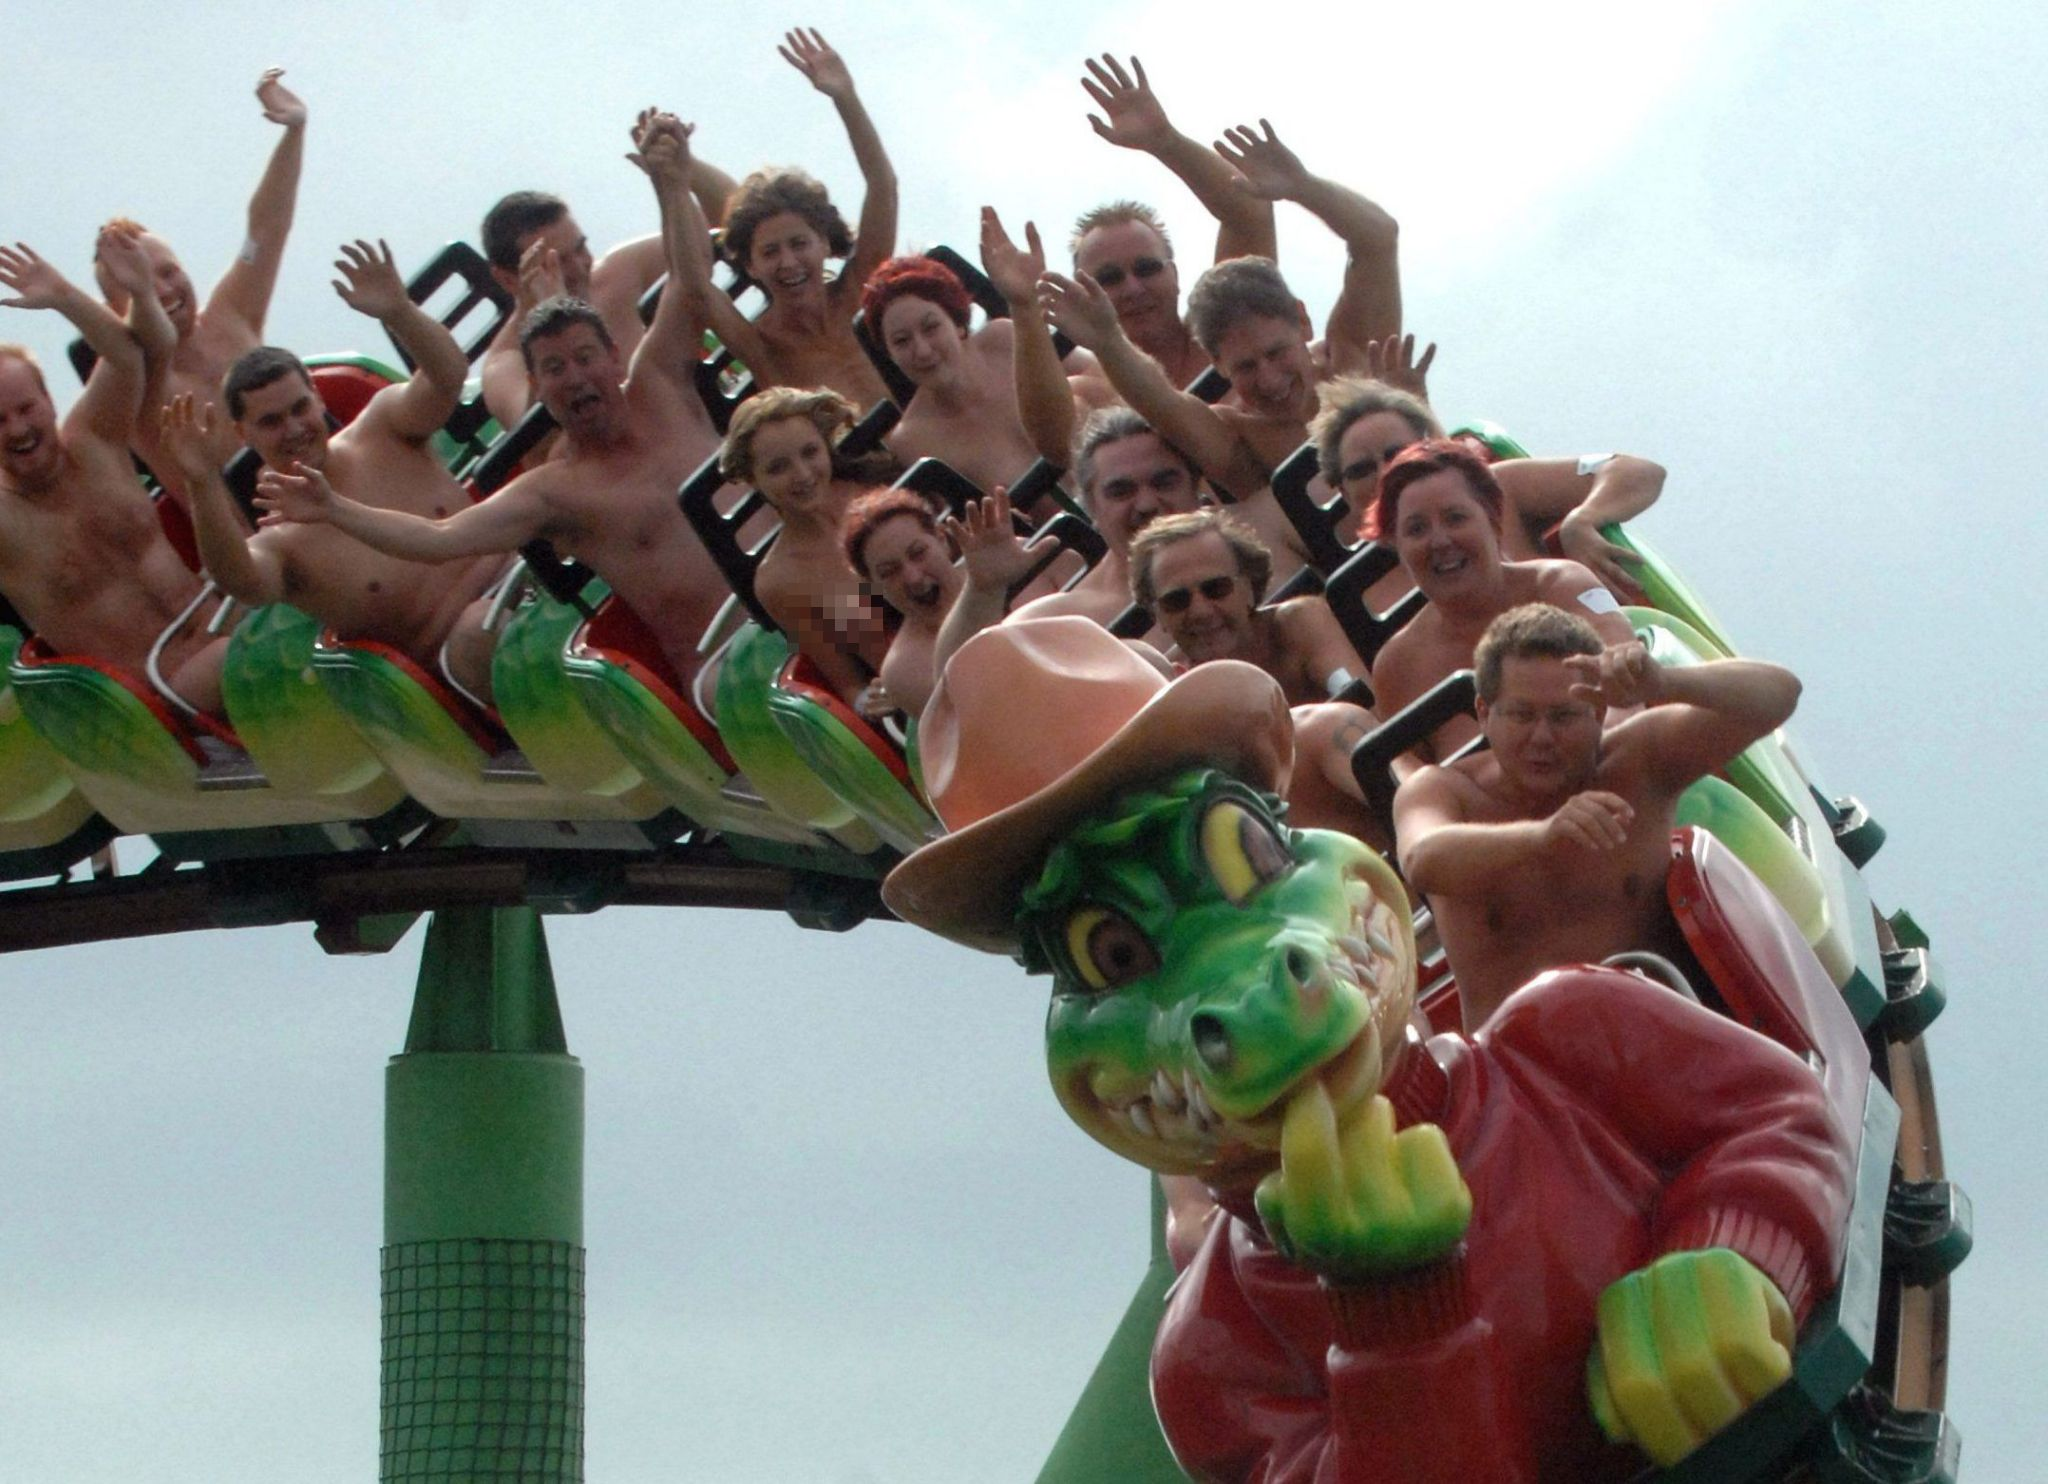 Erotikaland, The Theme Park That Will Truly Satisfy You-5951